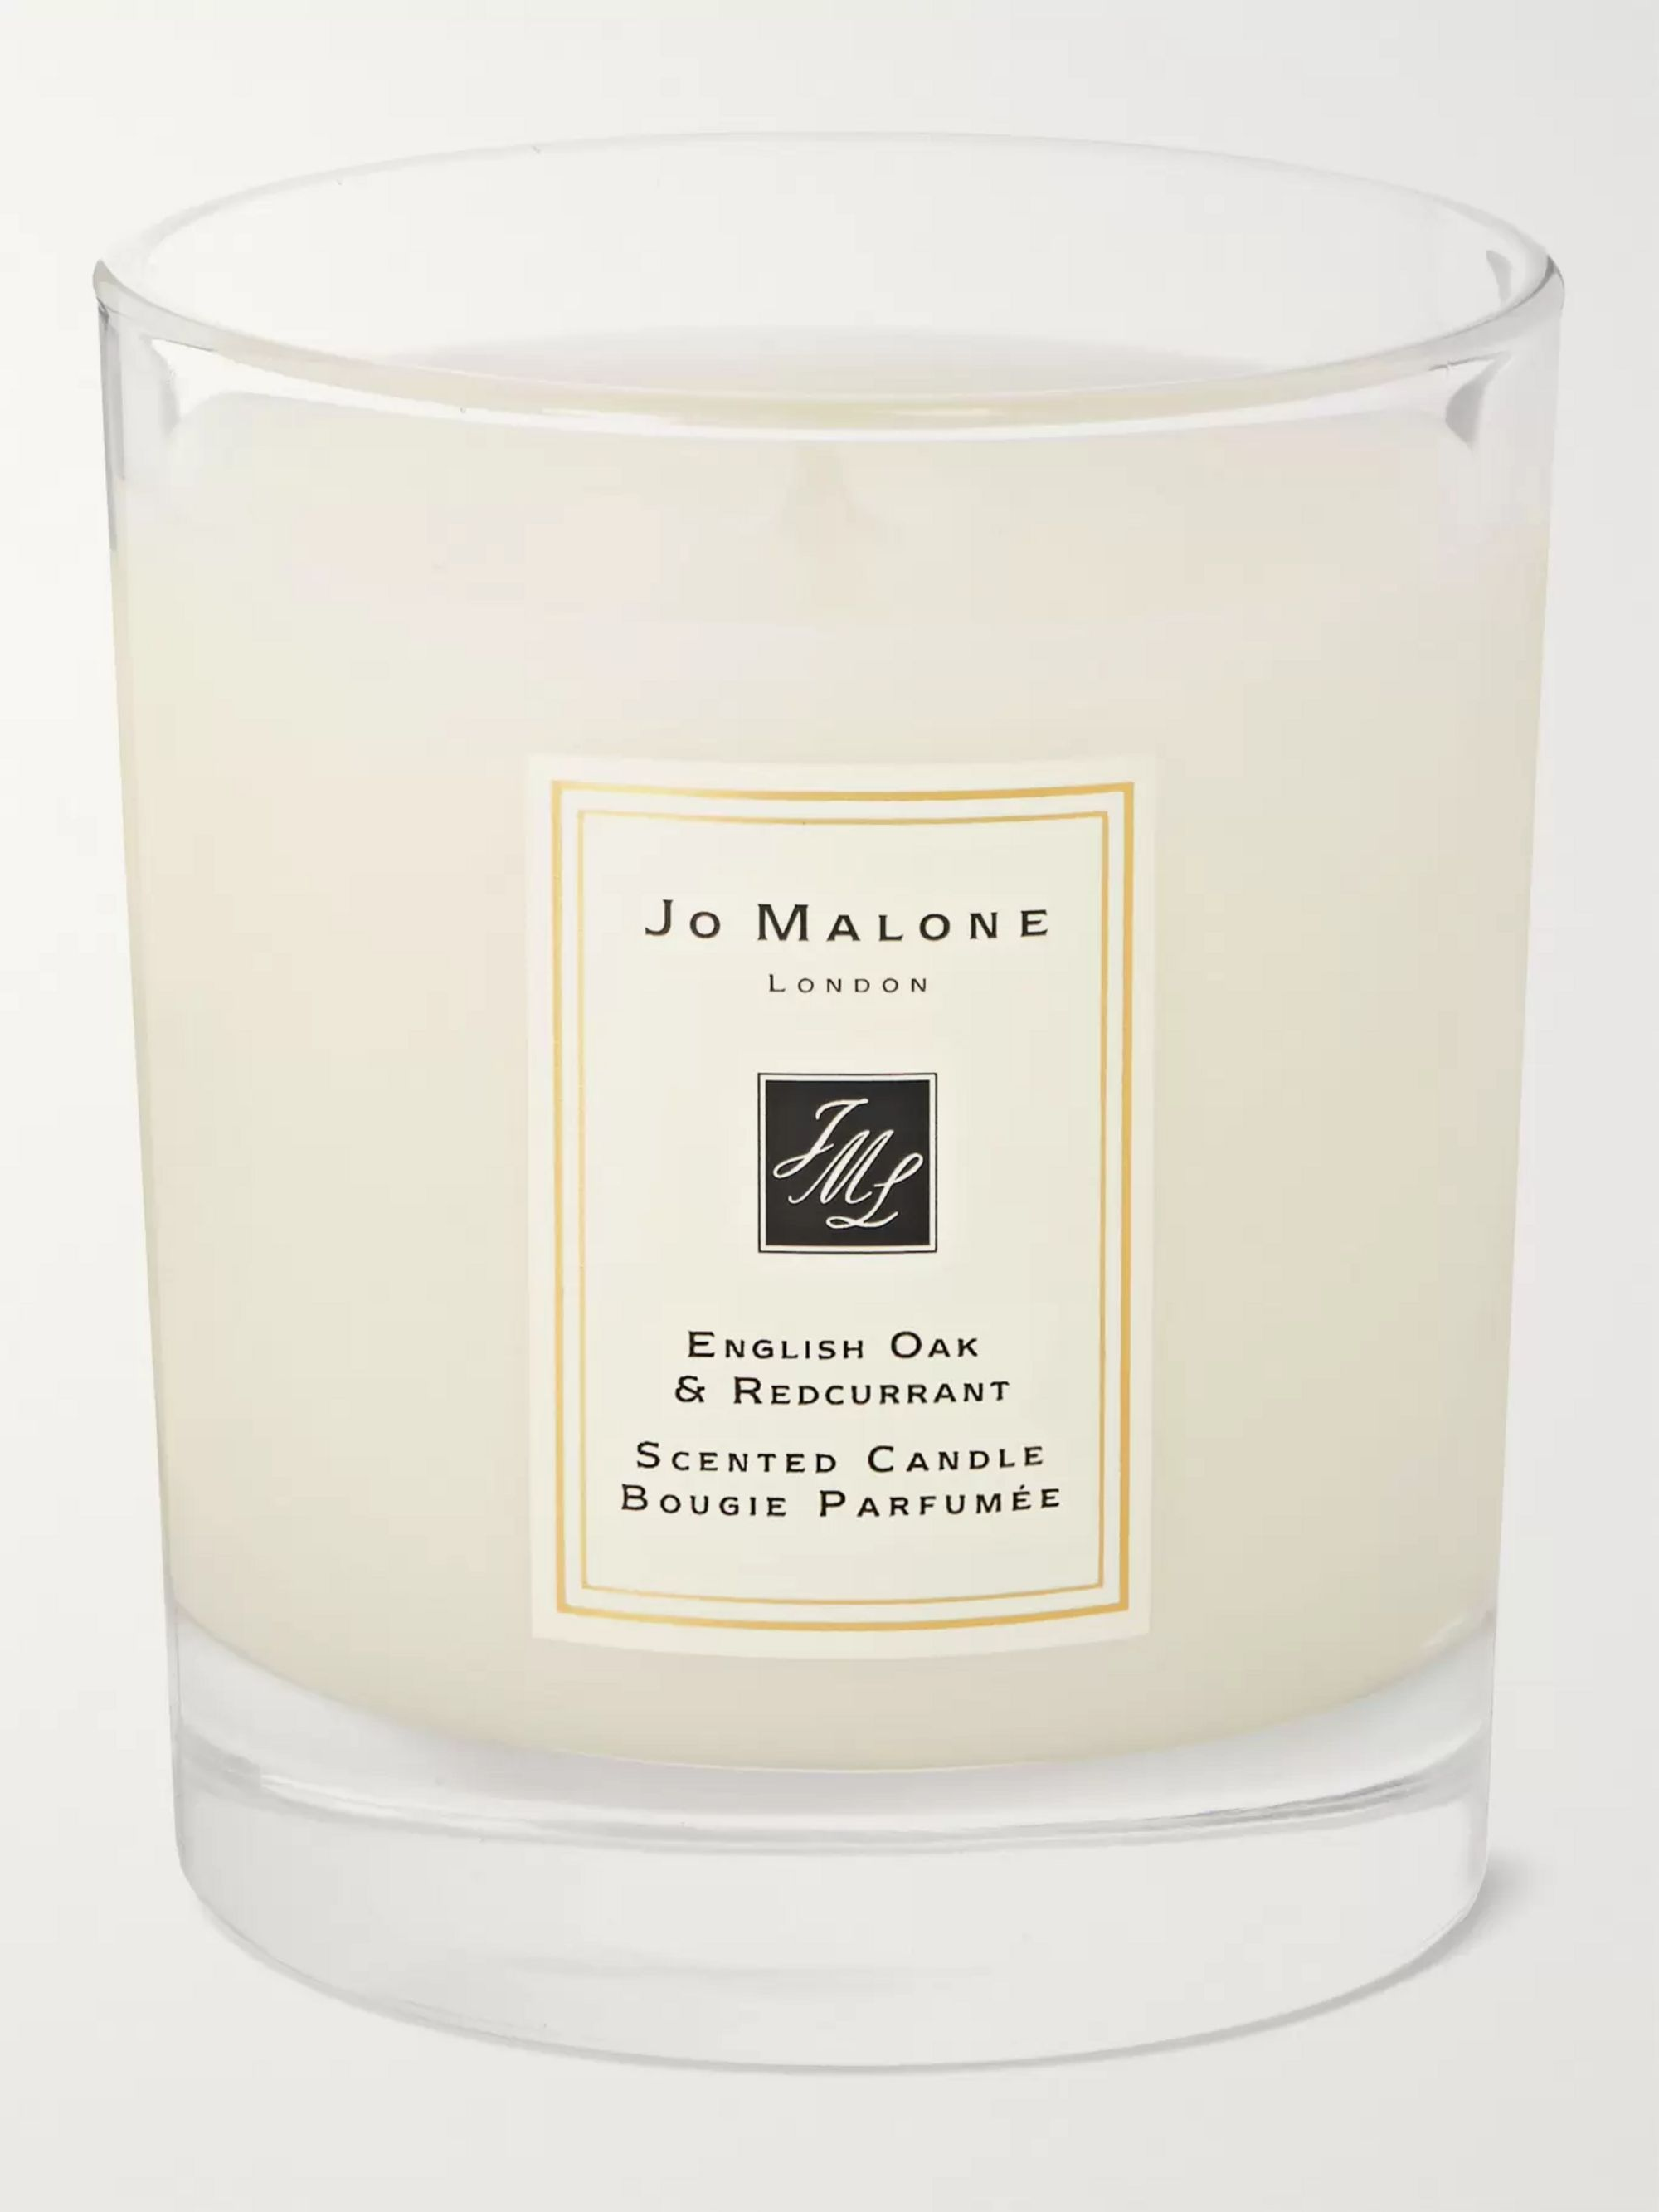 Jo Malone London English Oak & Redcurrant Scented Candle, 200g